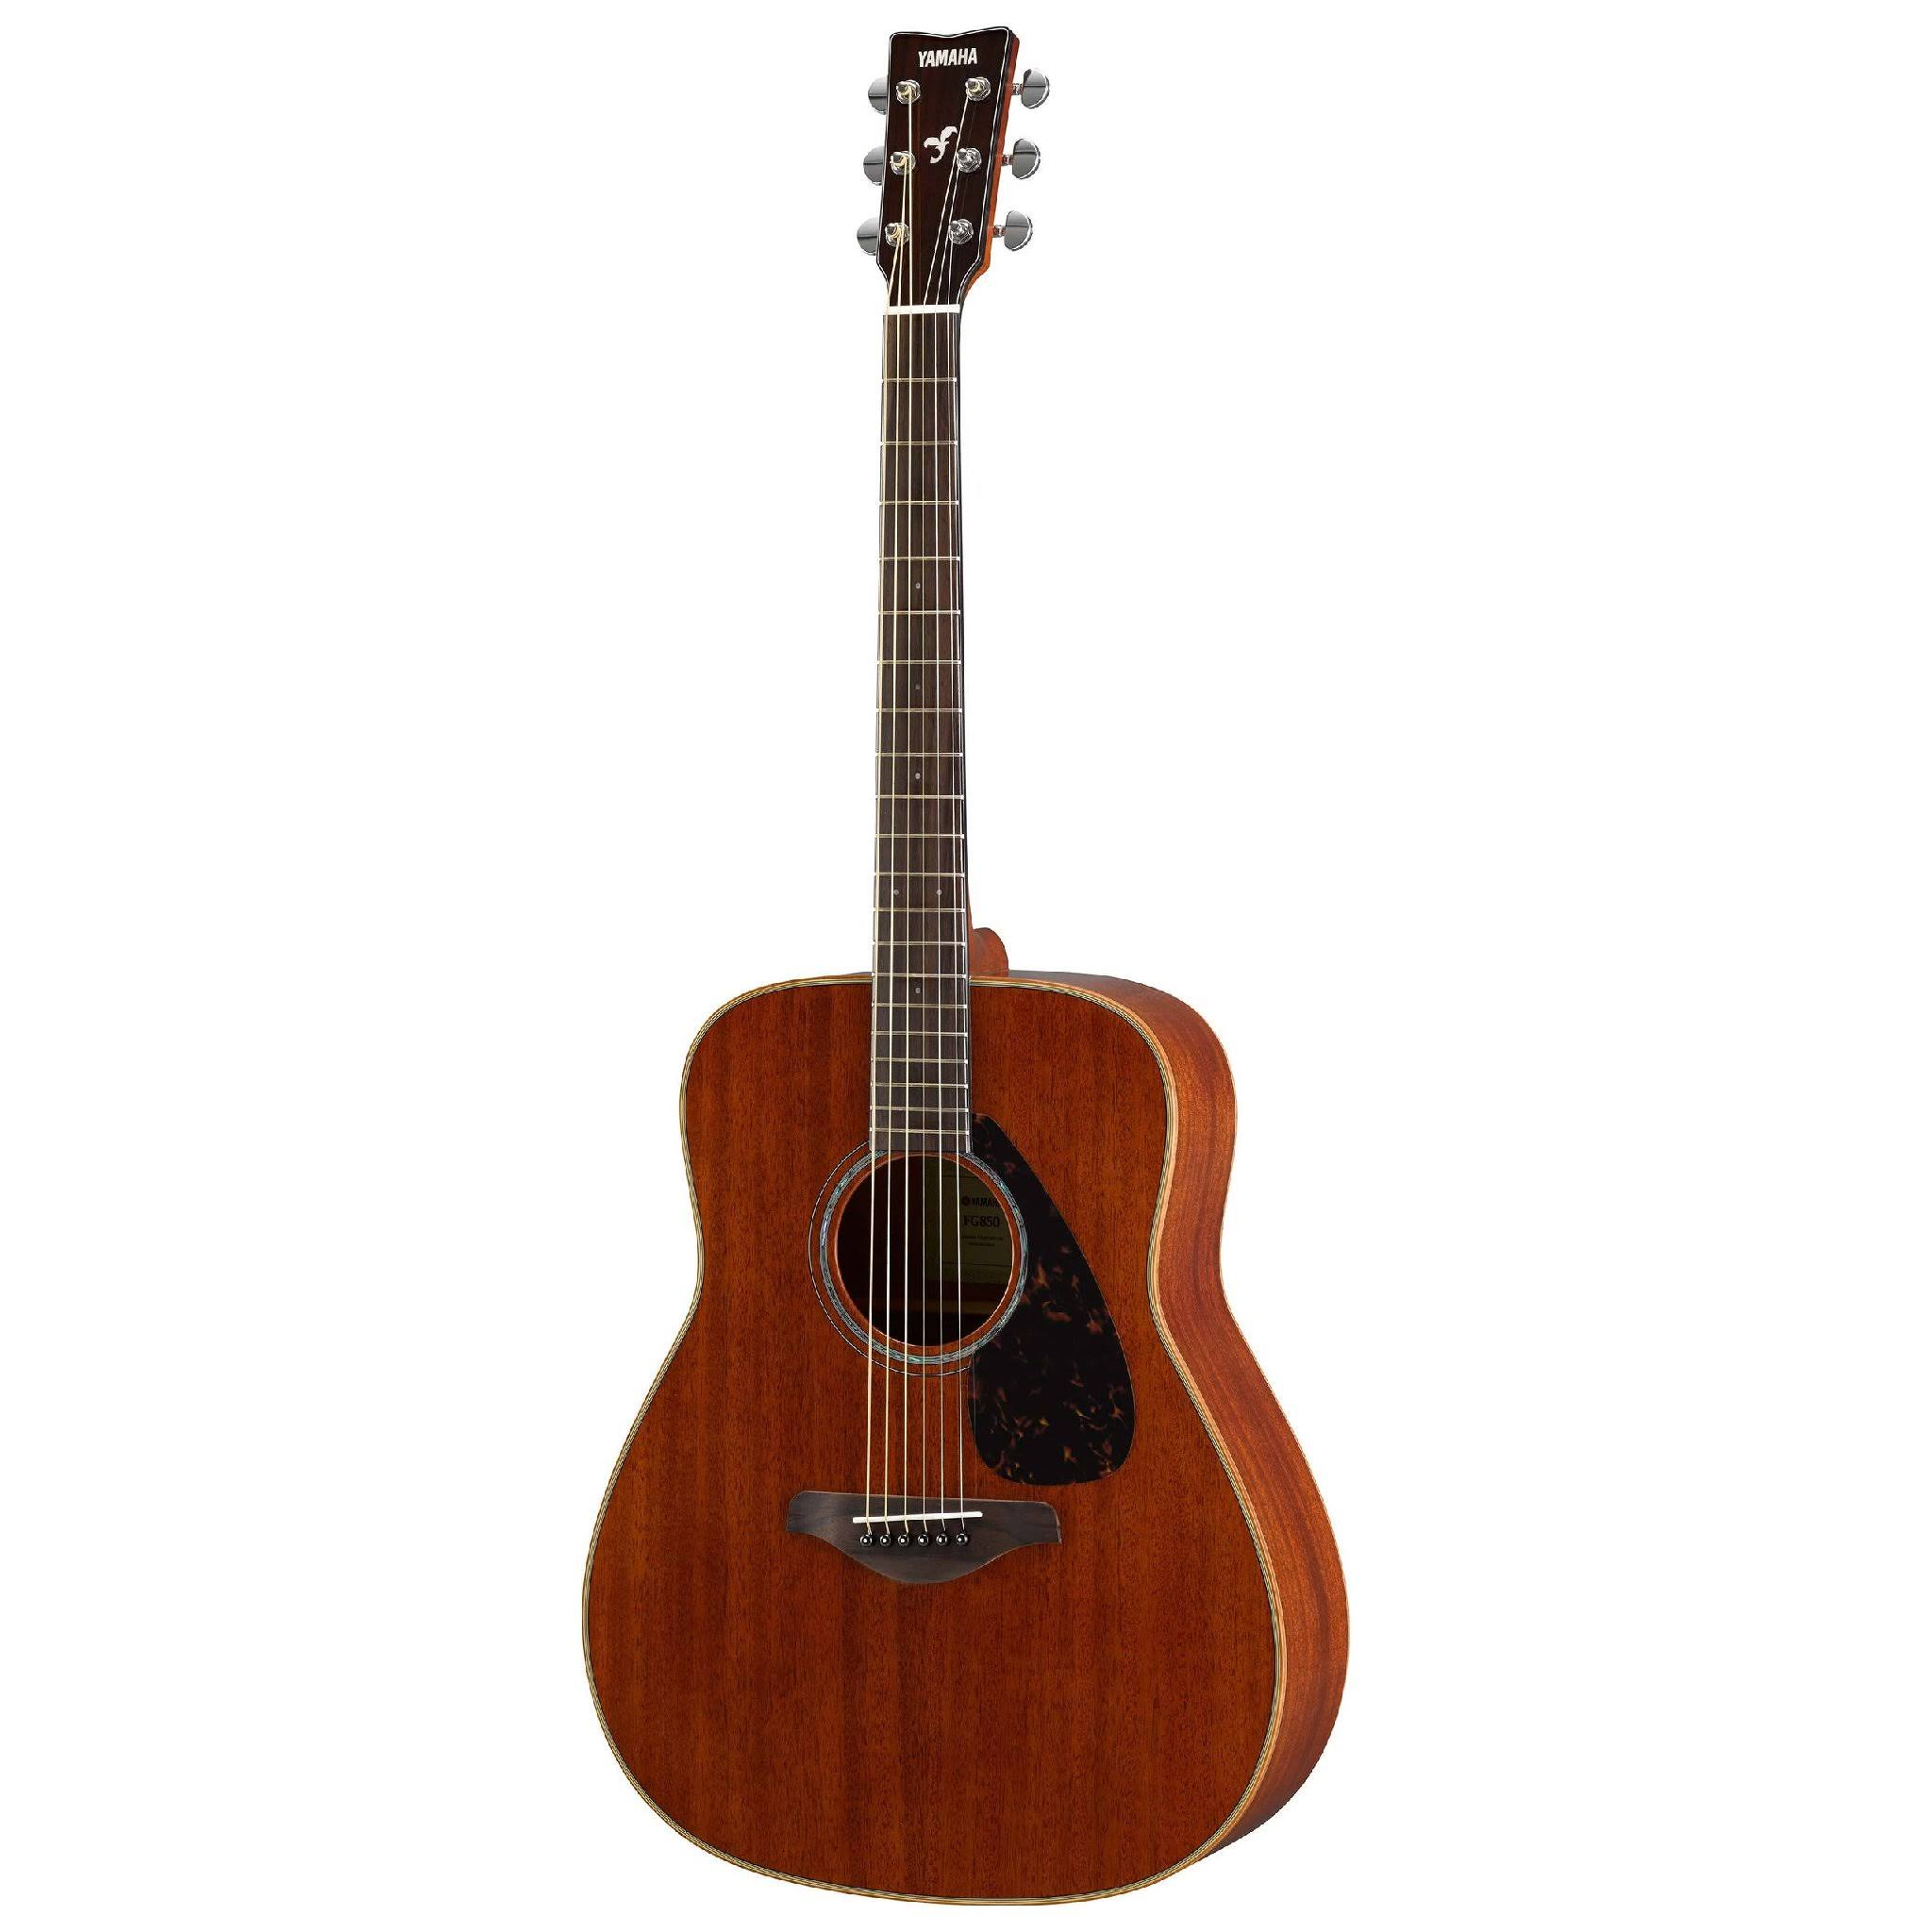 Yamaha FG850 Solid Top Acoustic Guitar - Mahogany